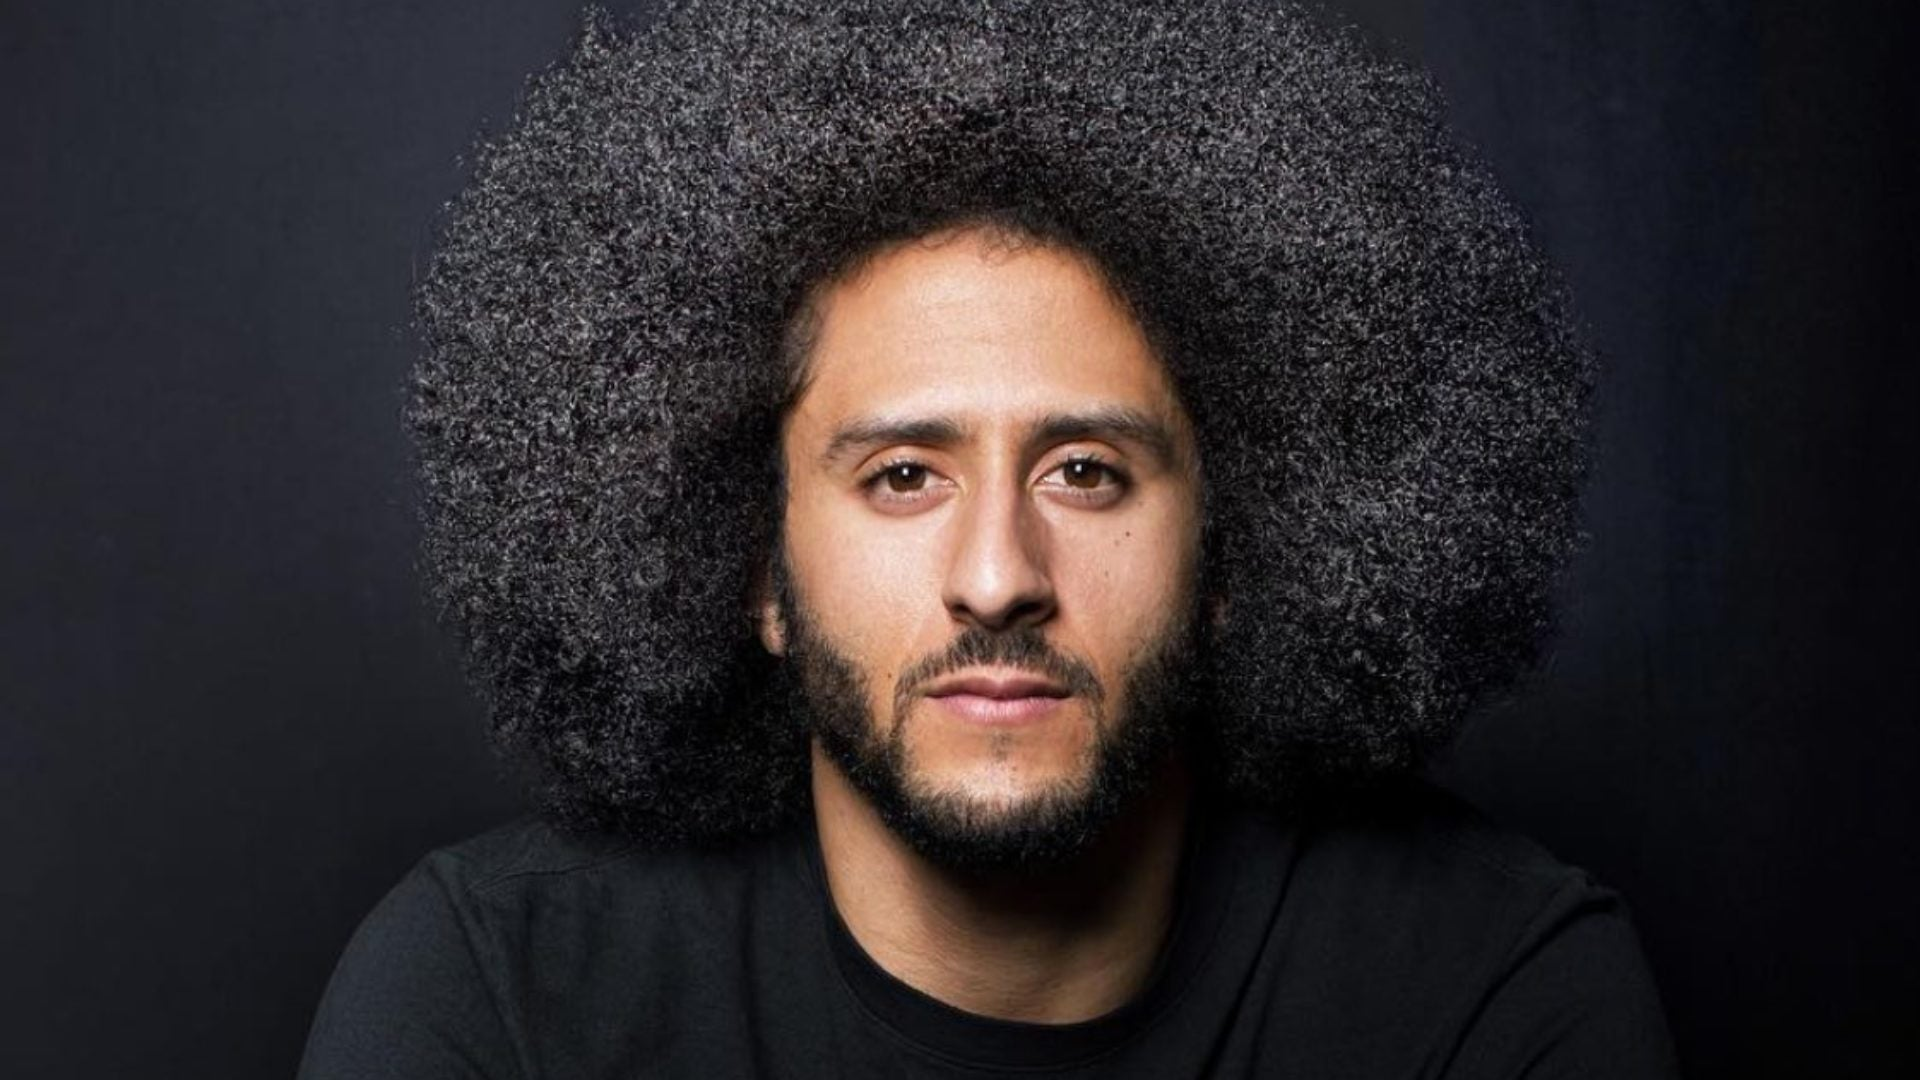 Ava DuVernay Creating Netflix Show Based On Colin Kaepernick's Life